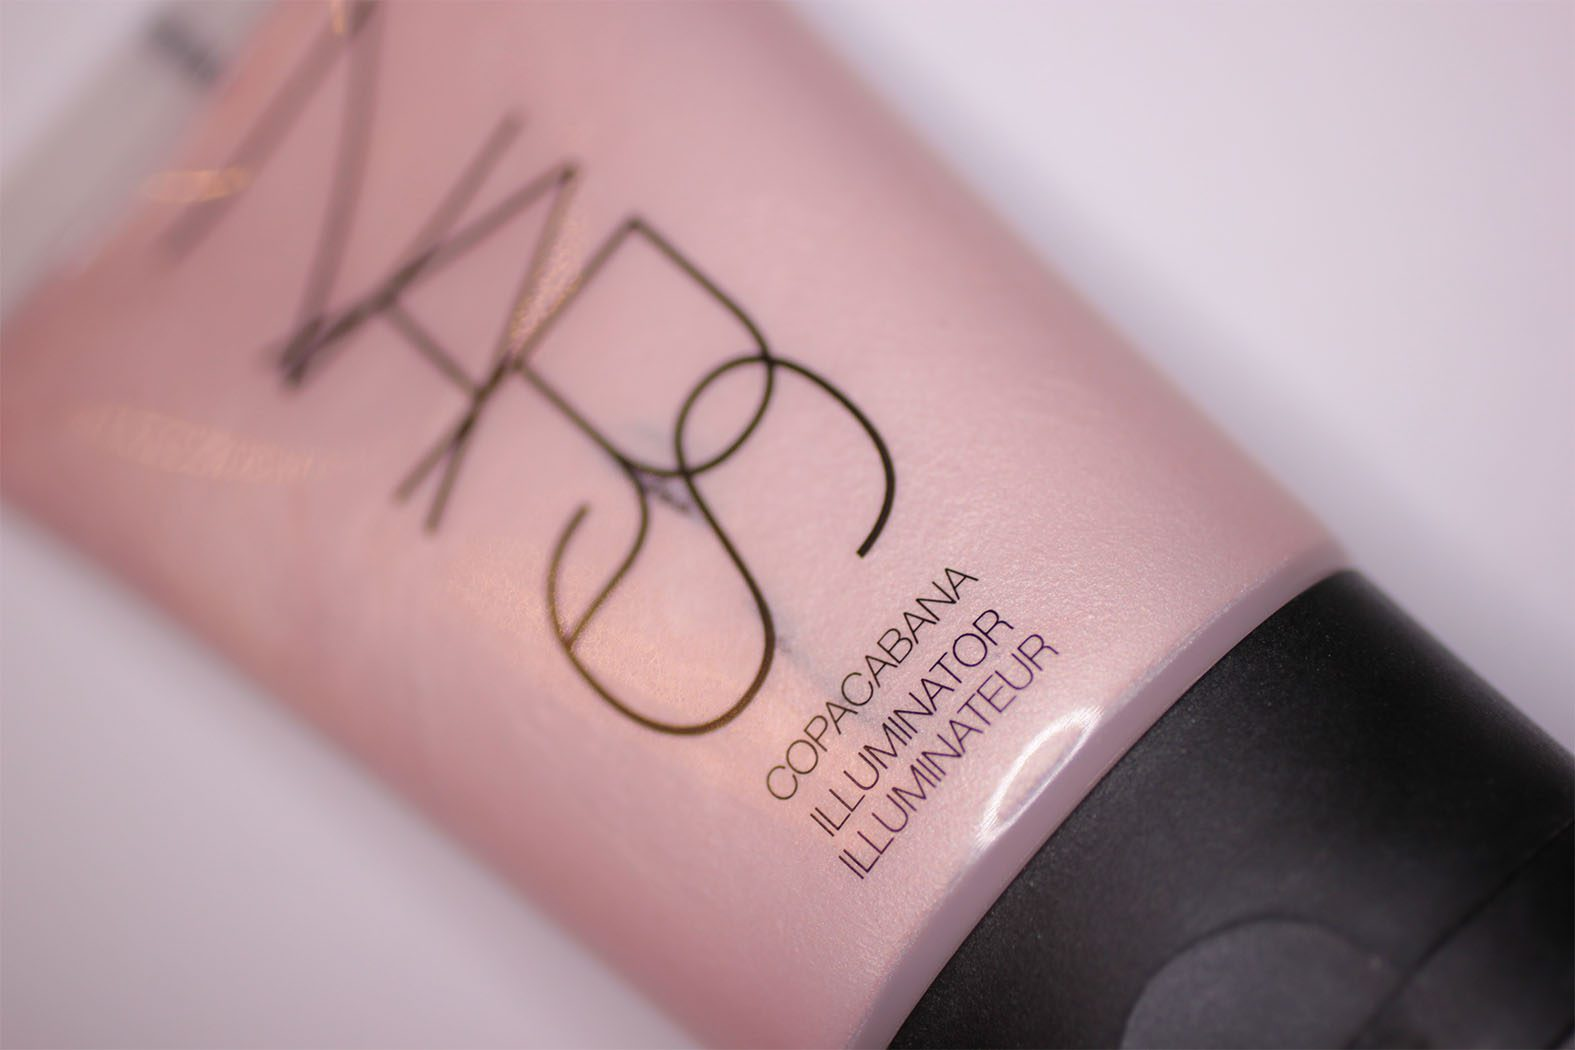 Iluminador De Nars Mis Iluminadores Favoritos Laia Martin Make Up